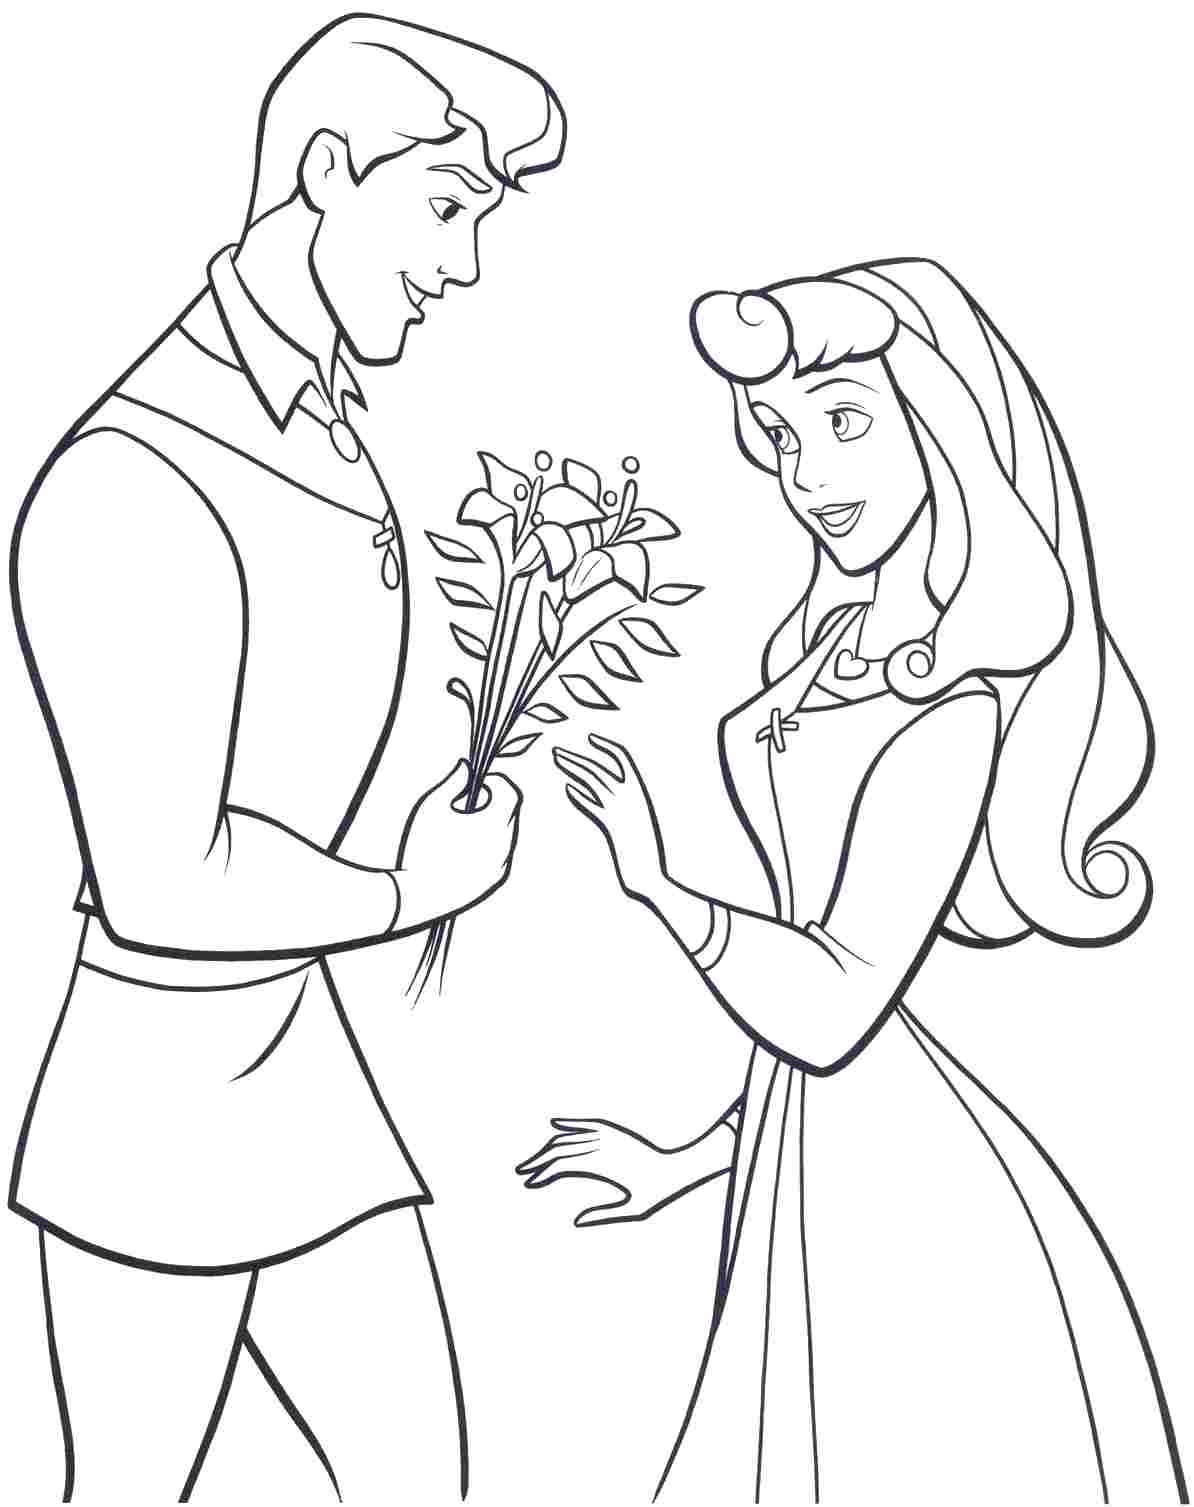 Disney Princess Aurora - Download Printable Coloring Image